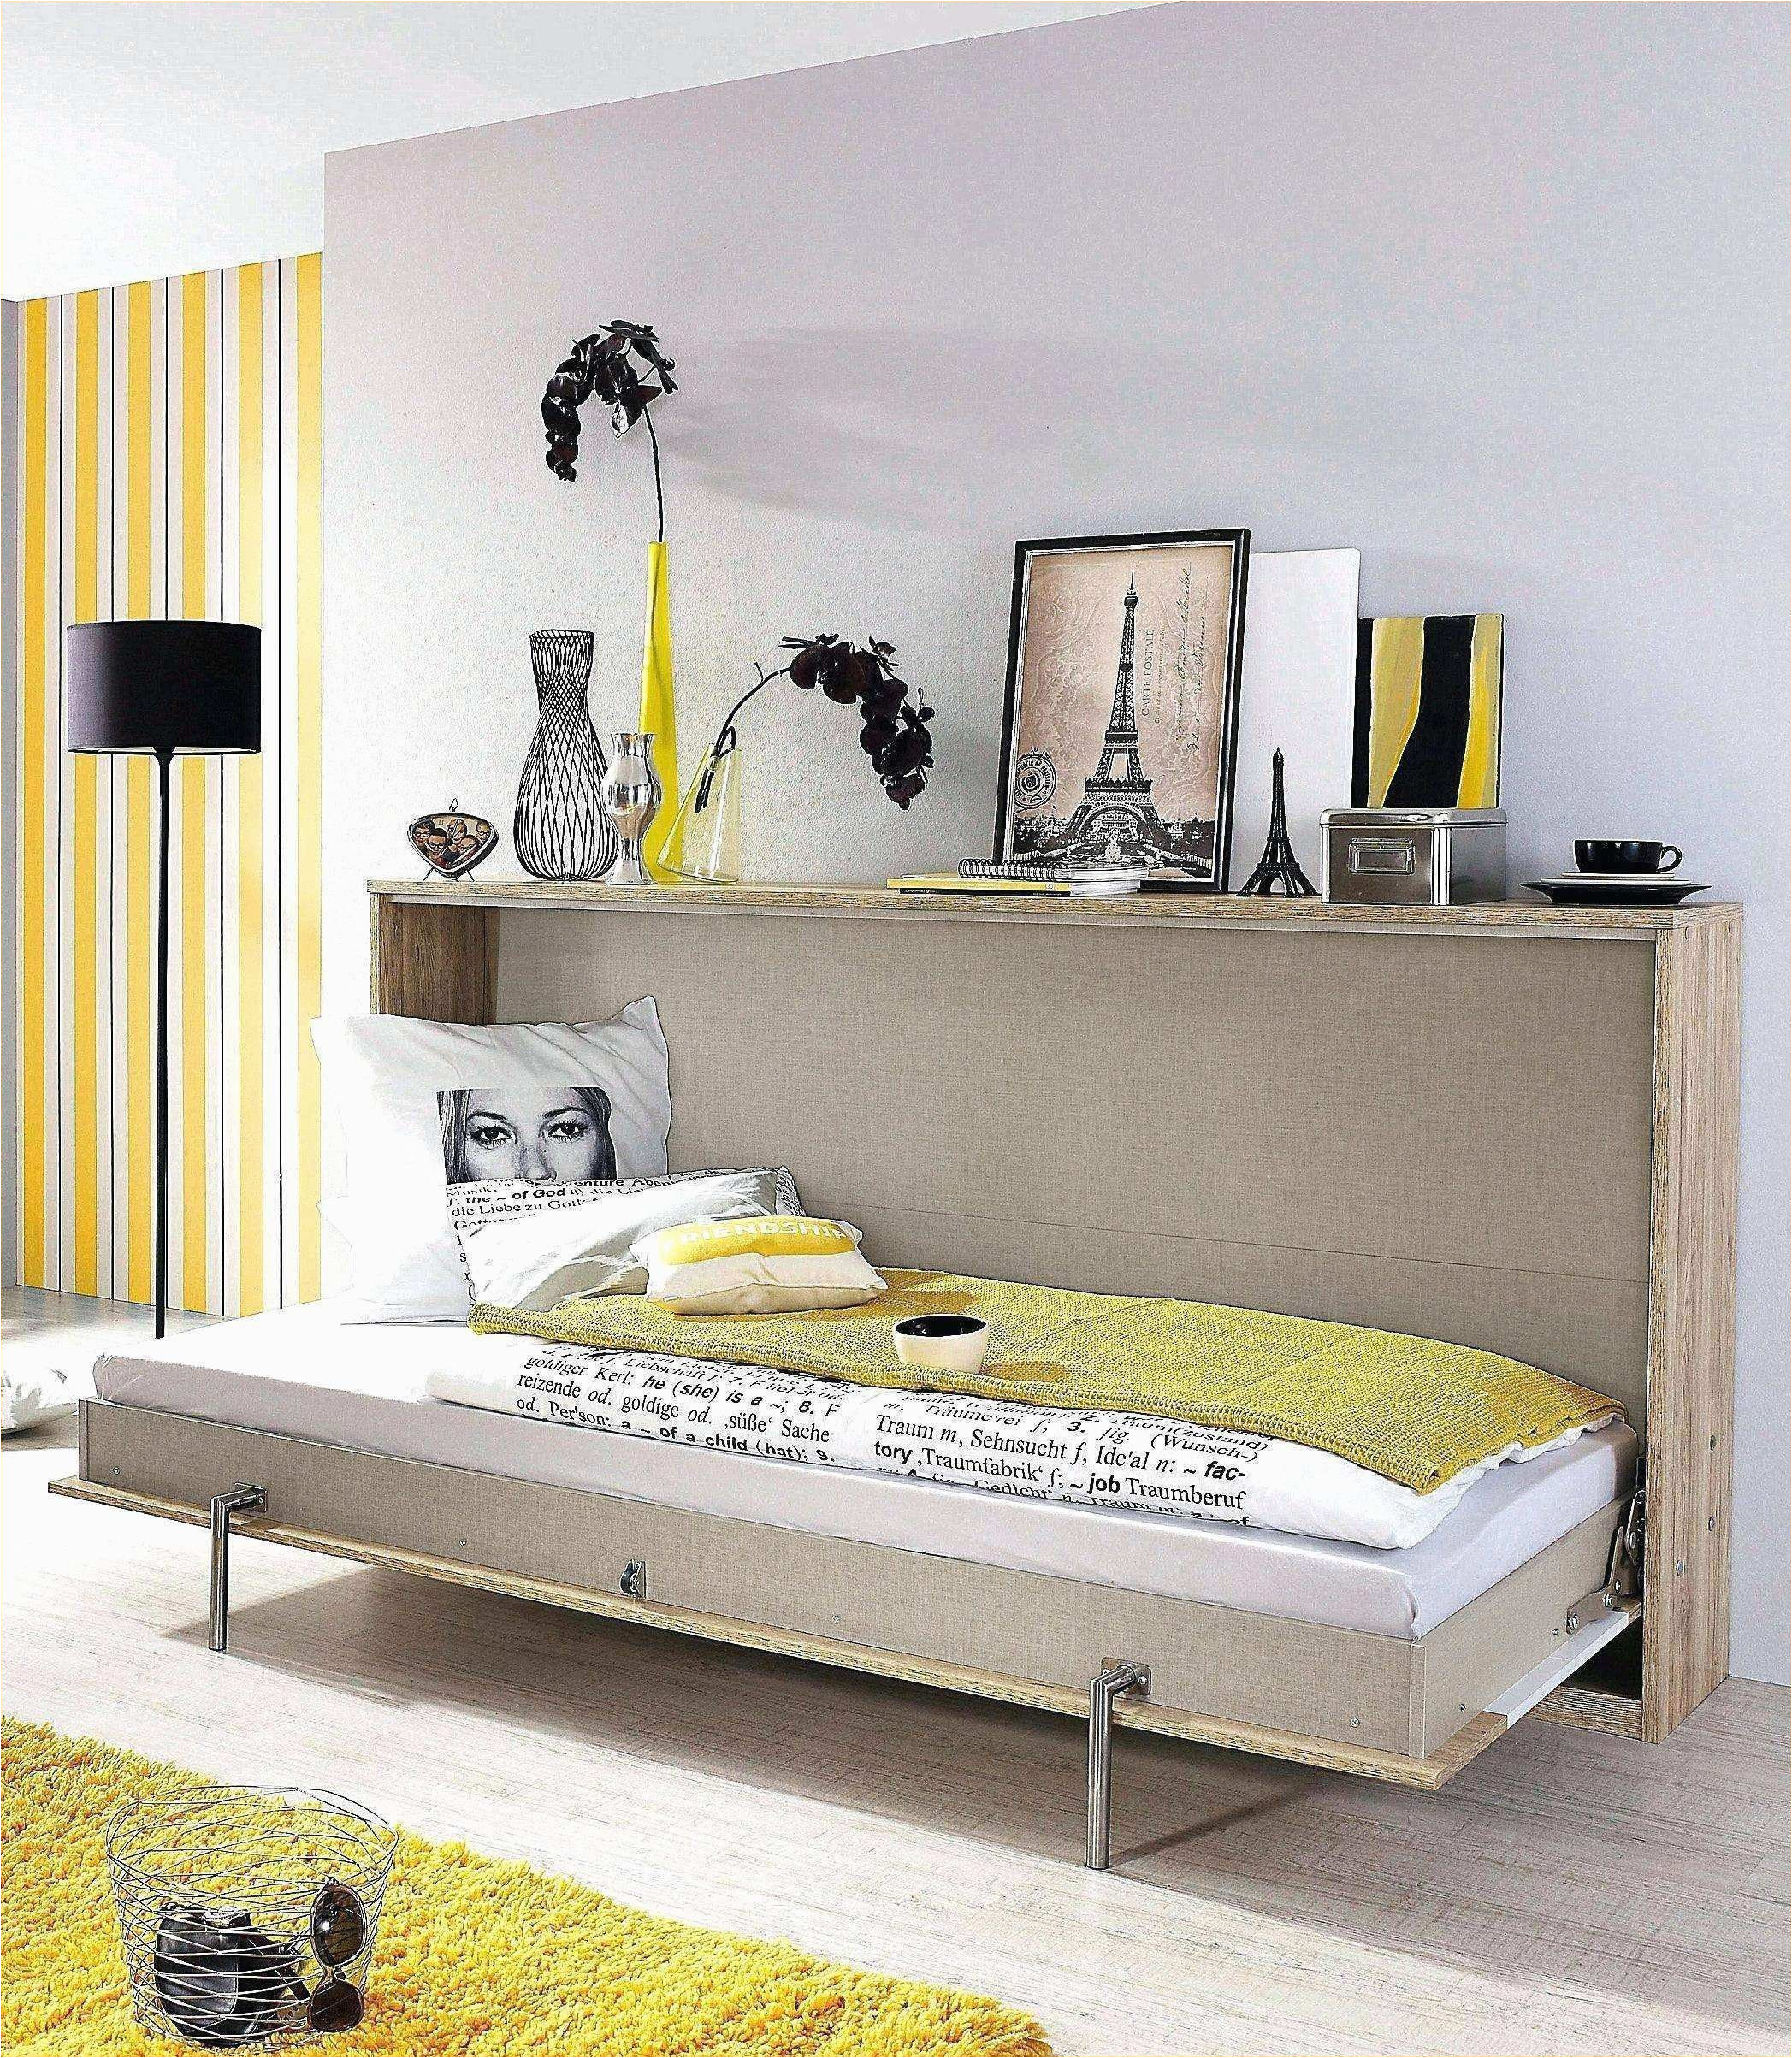 Ikea Malm Storage Bed Review Ikea Morgedal Test Raffiniert Elegant Ikea Malm Storage Bed Review